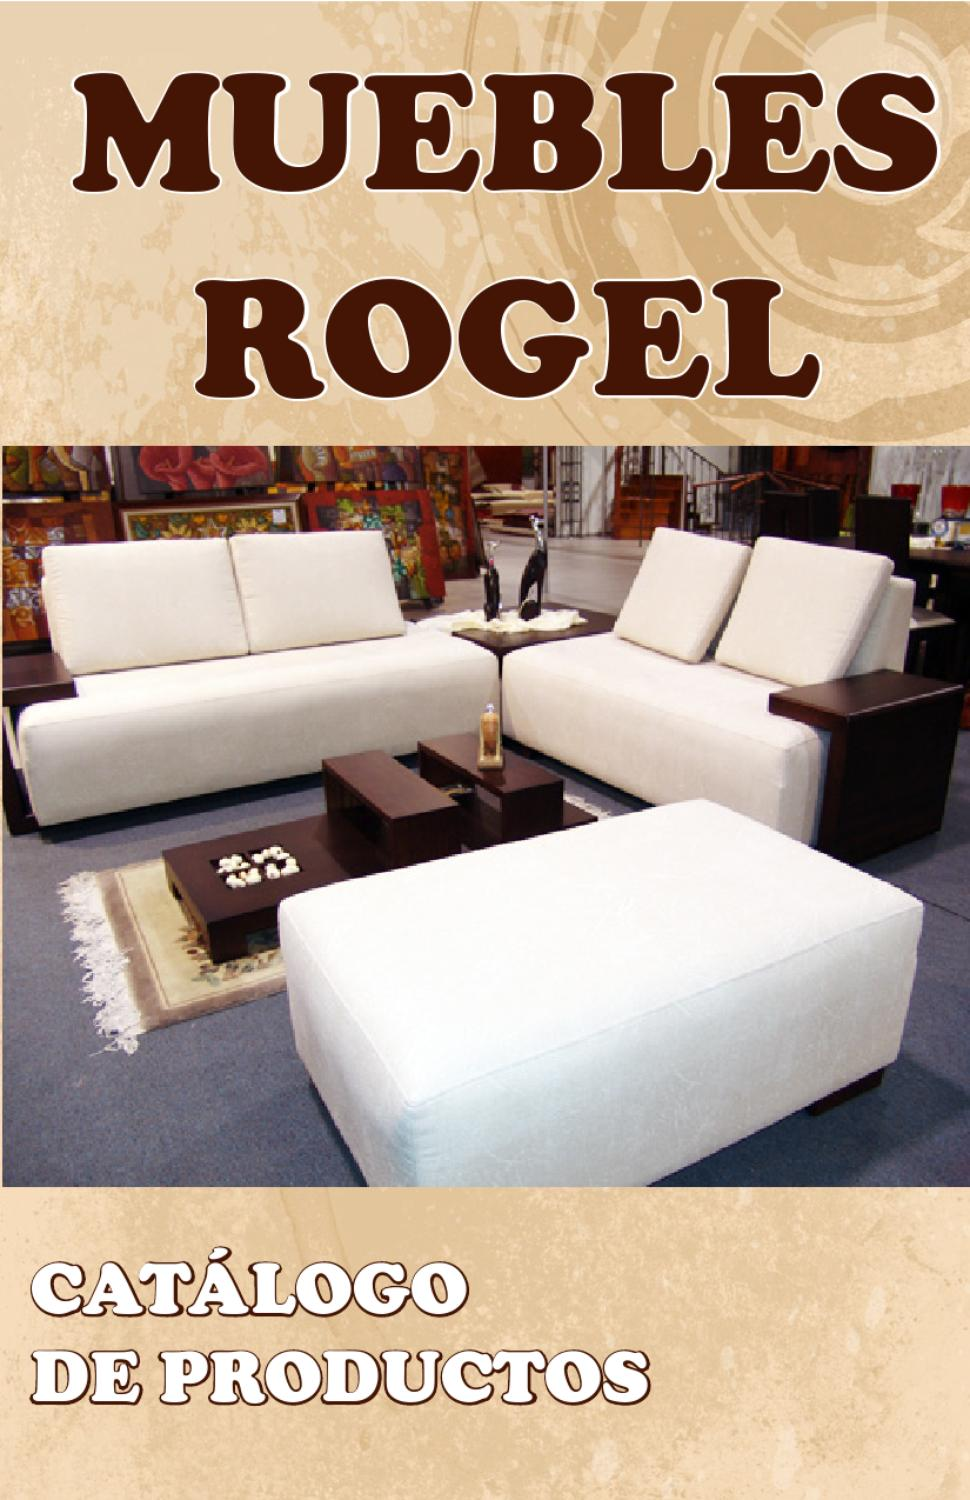 Muebles Milenium Catalogo Muebles Rogel By Andrea Mancia Issuu